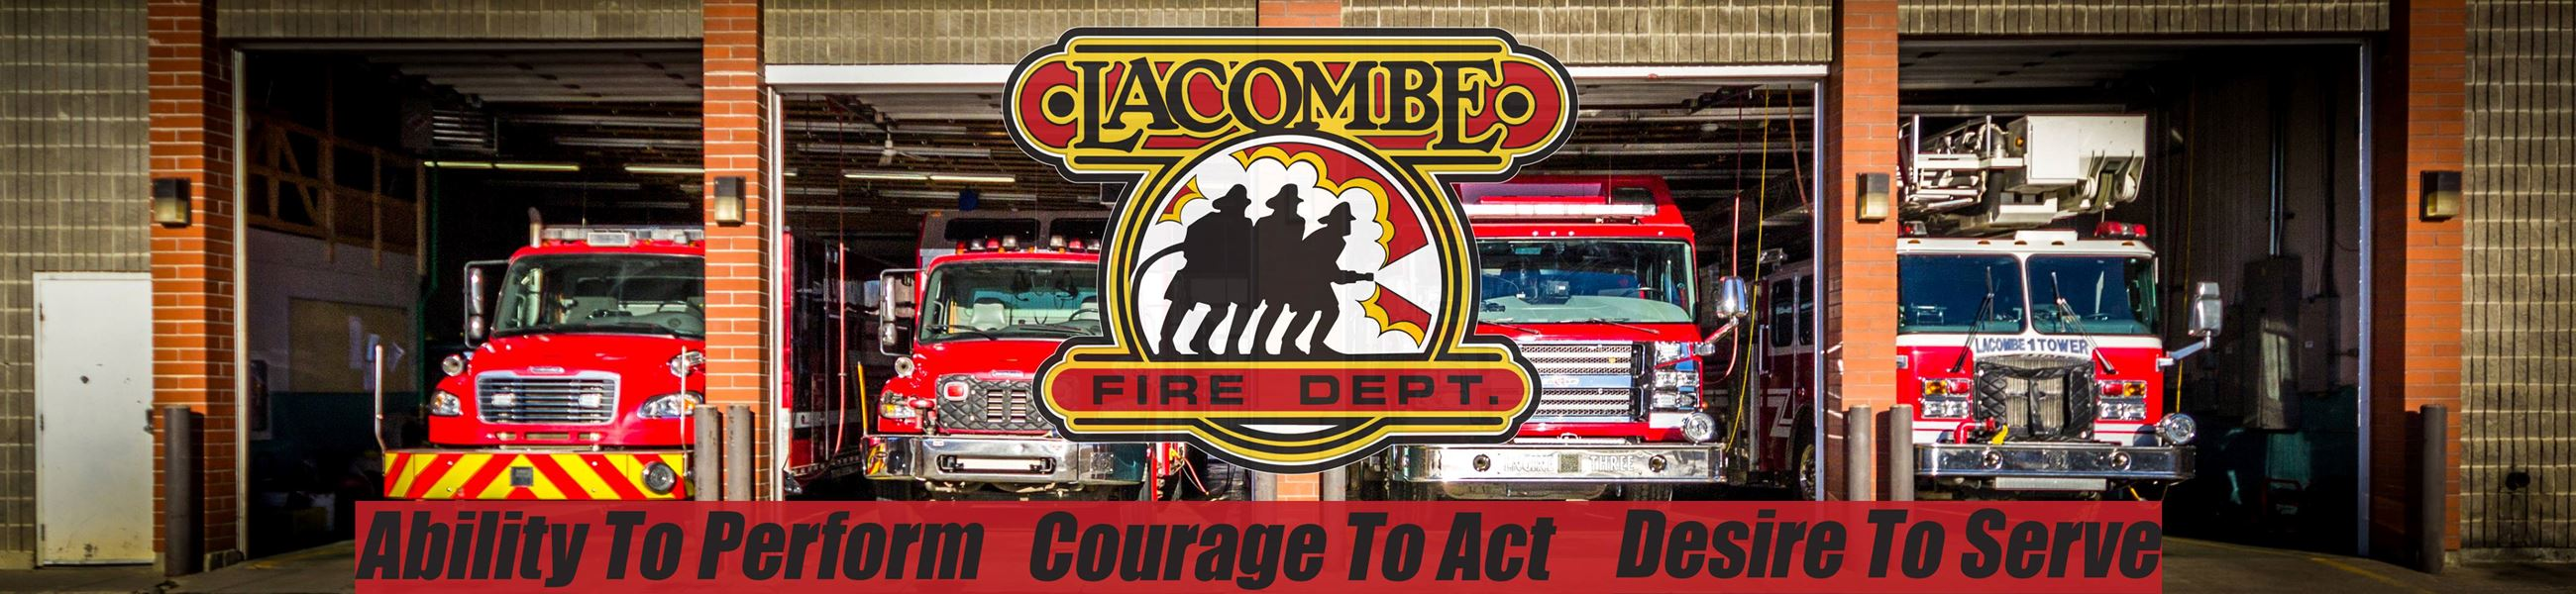 Lacombe Fire Banner